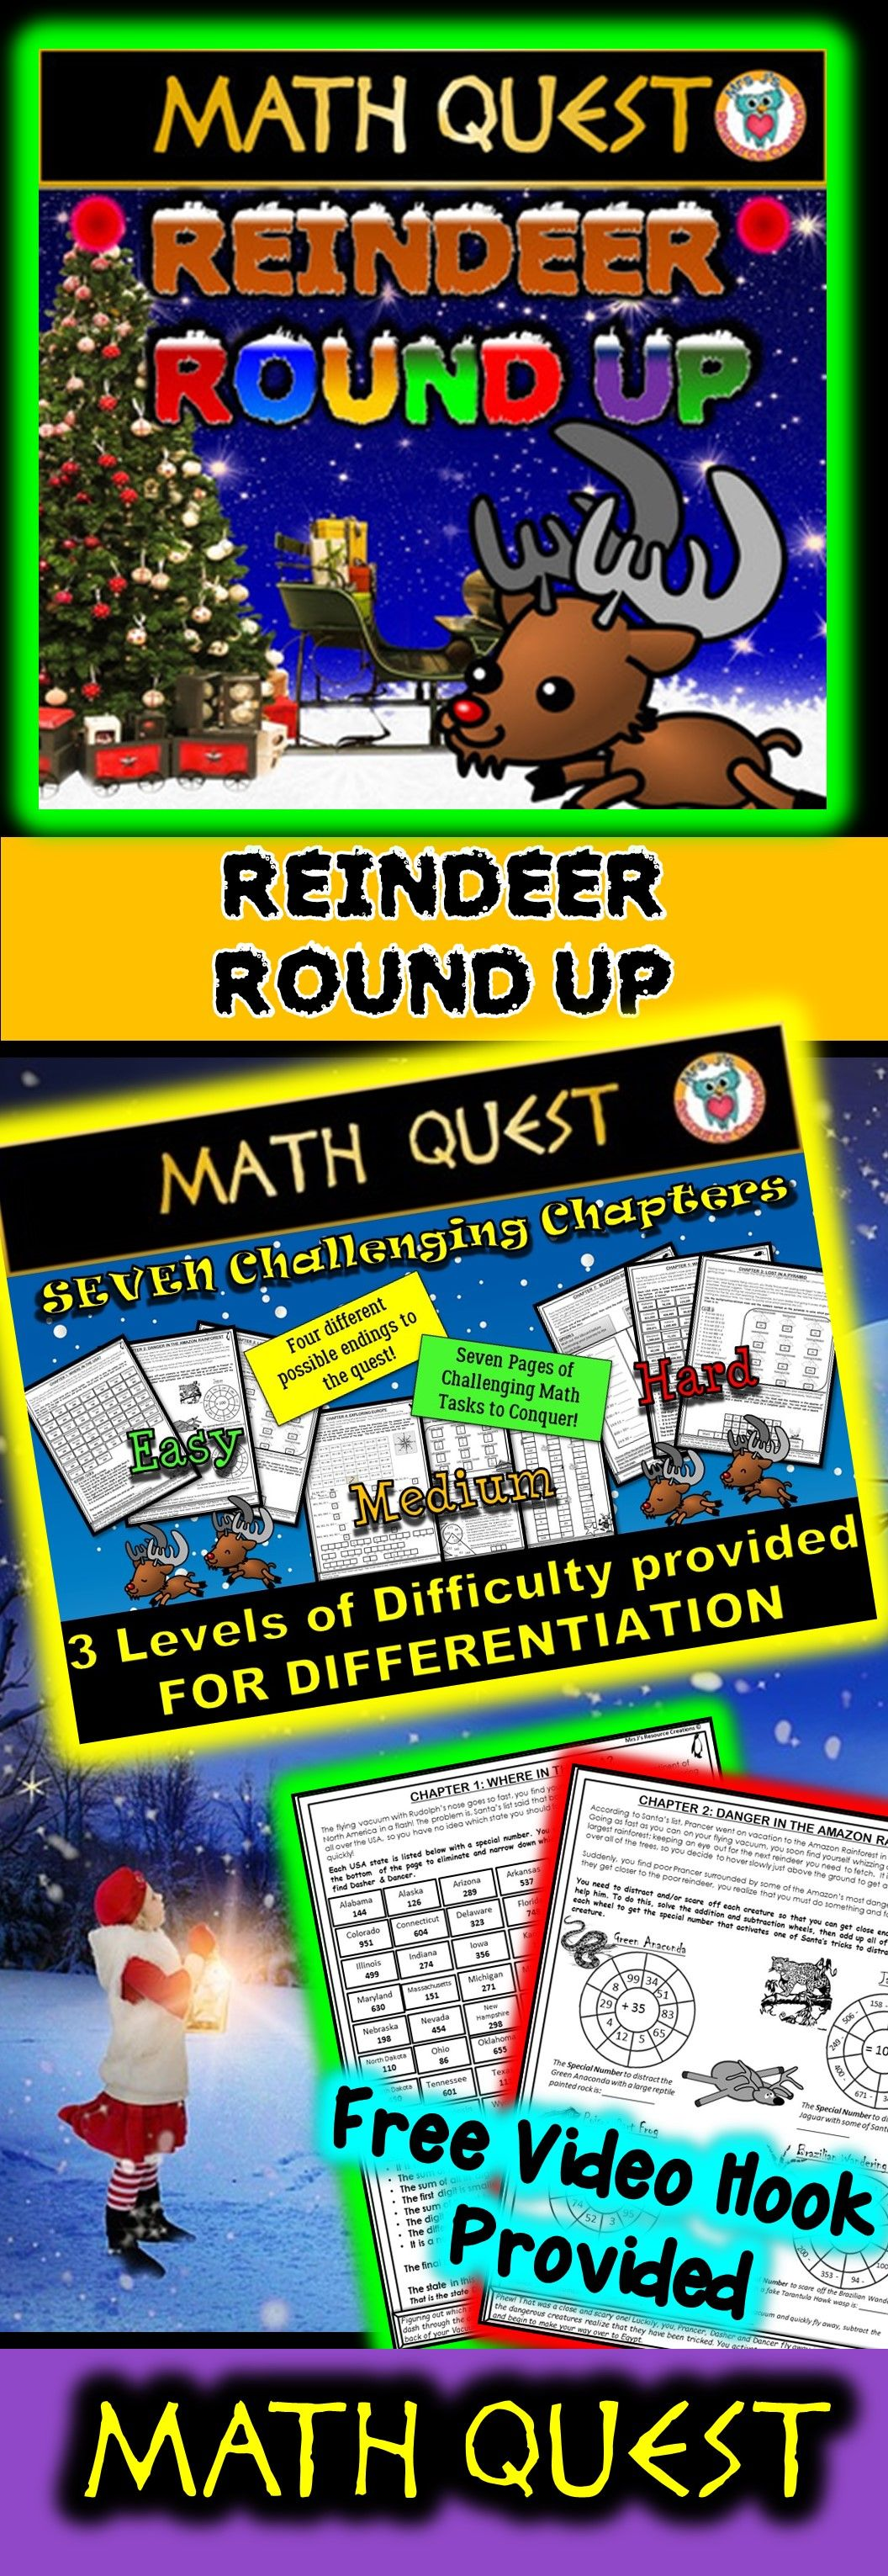 Christmas Math Quest! Differentiated levels provided